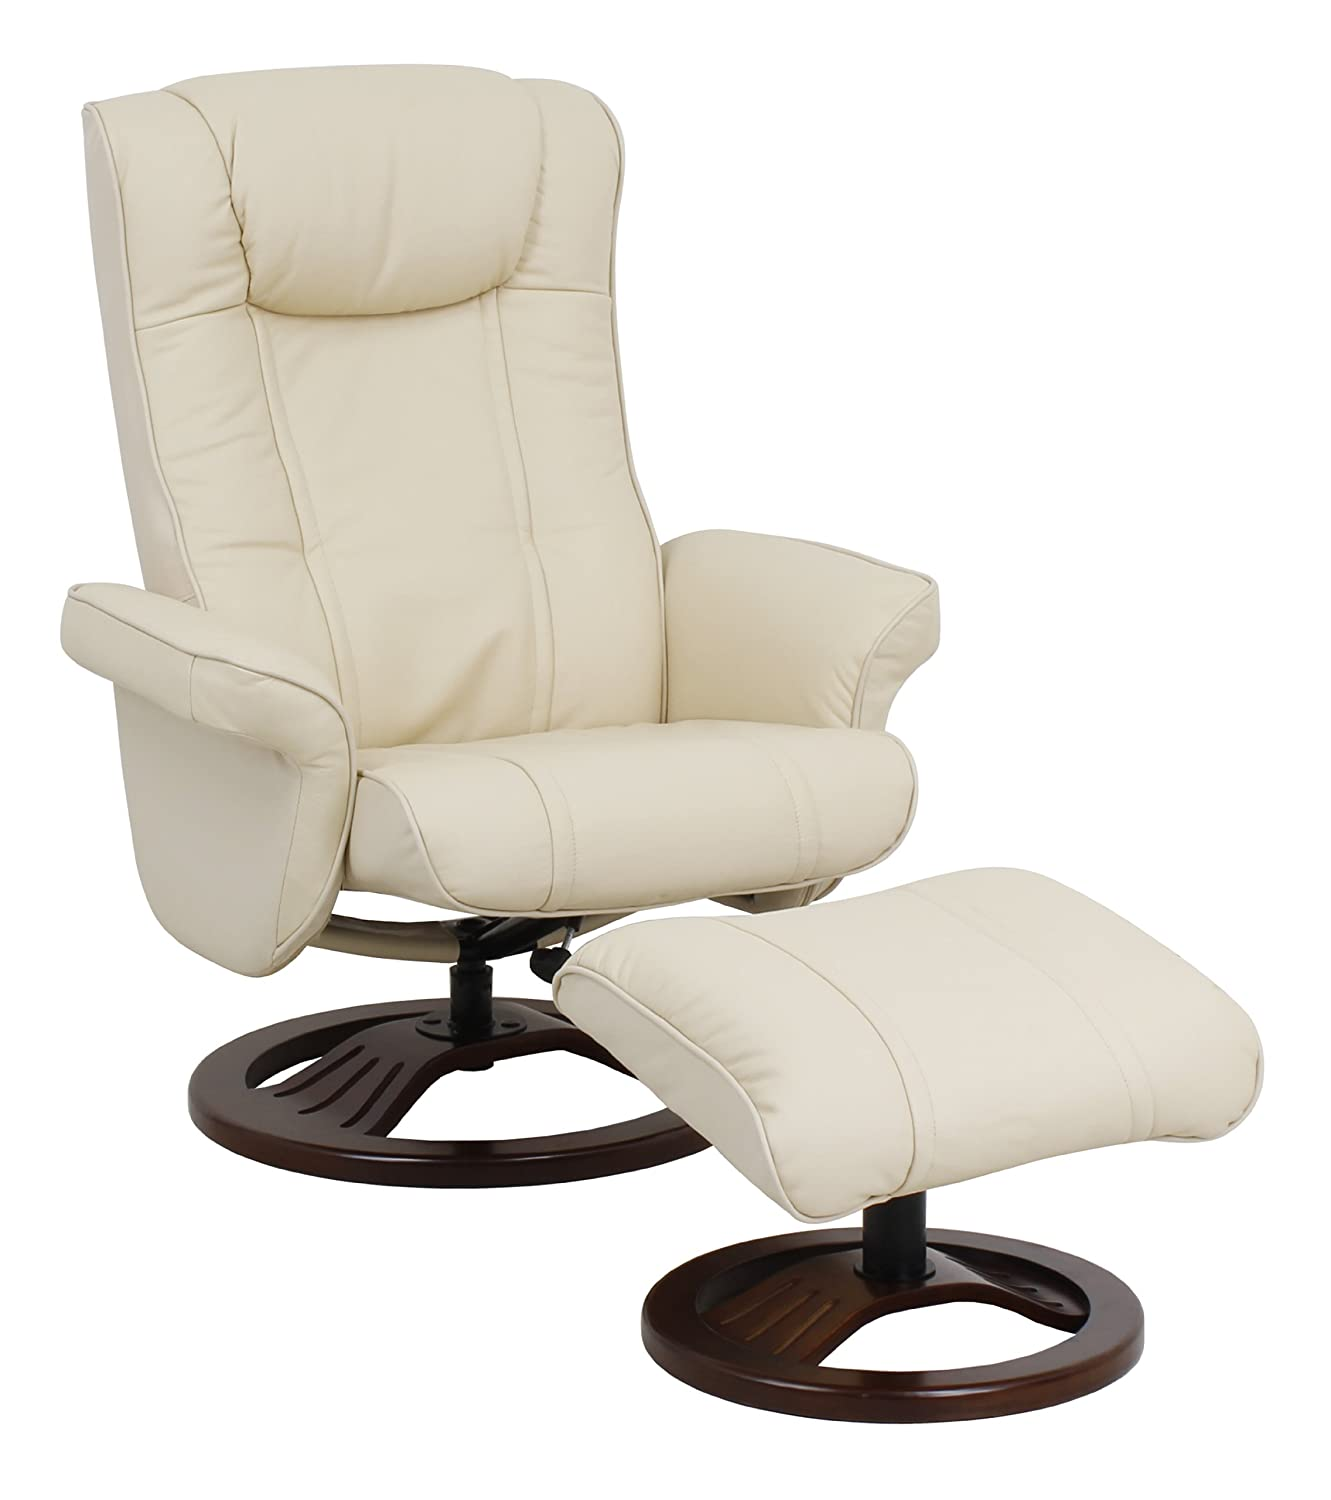 Global Furniture Alliance London Real Leather Recliner Chair and